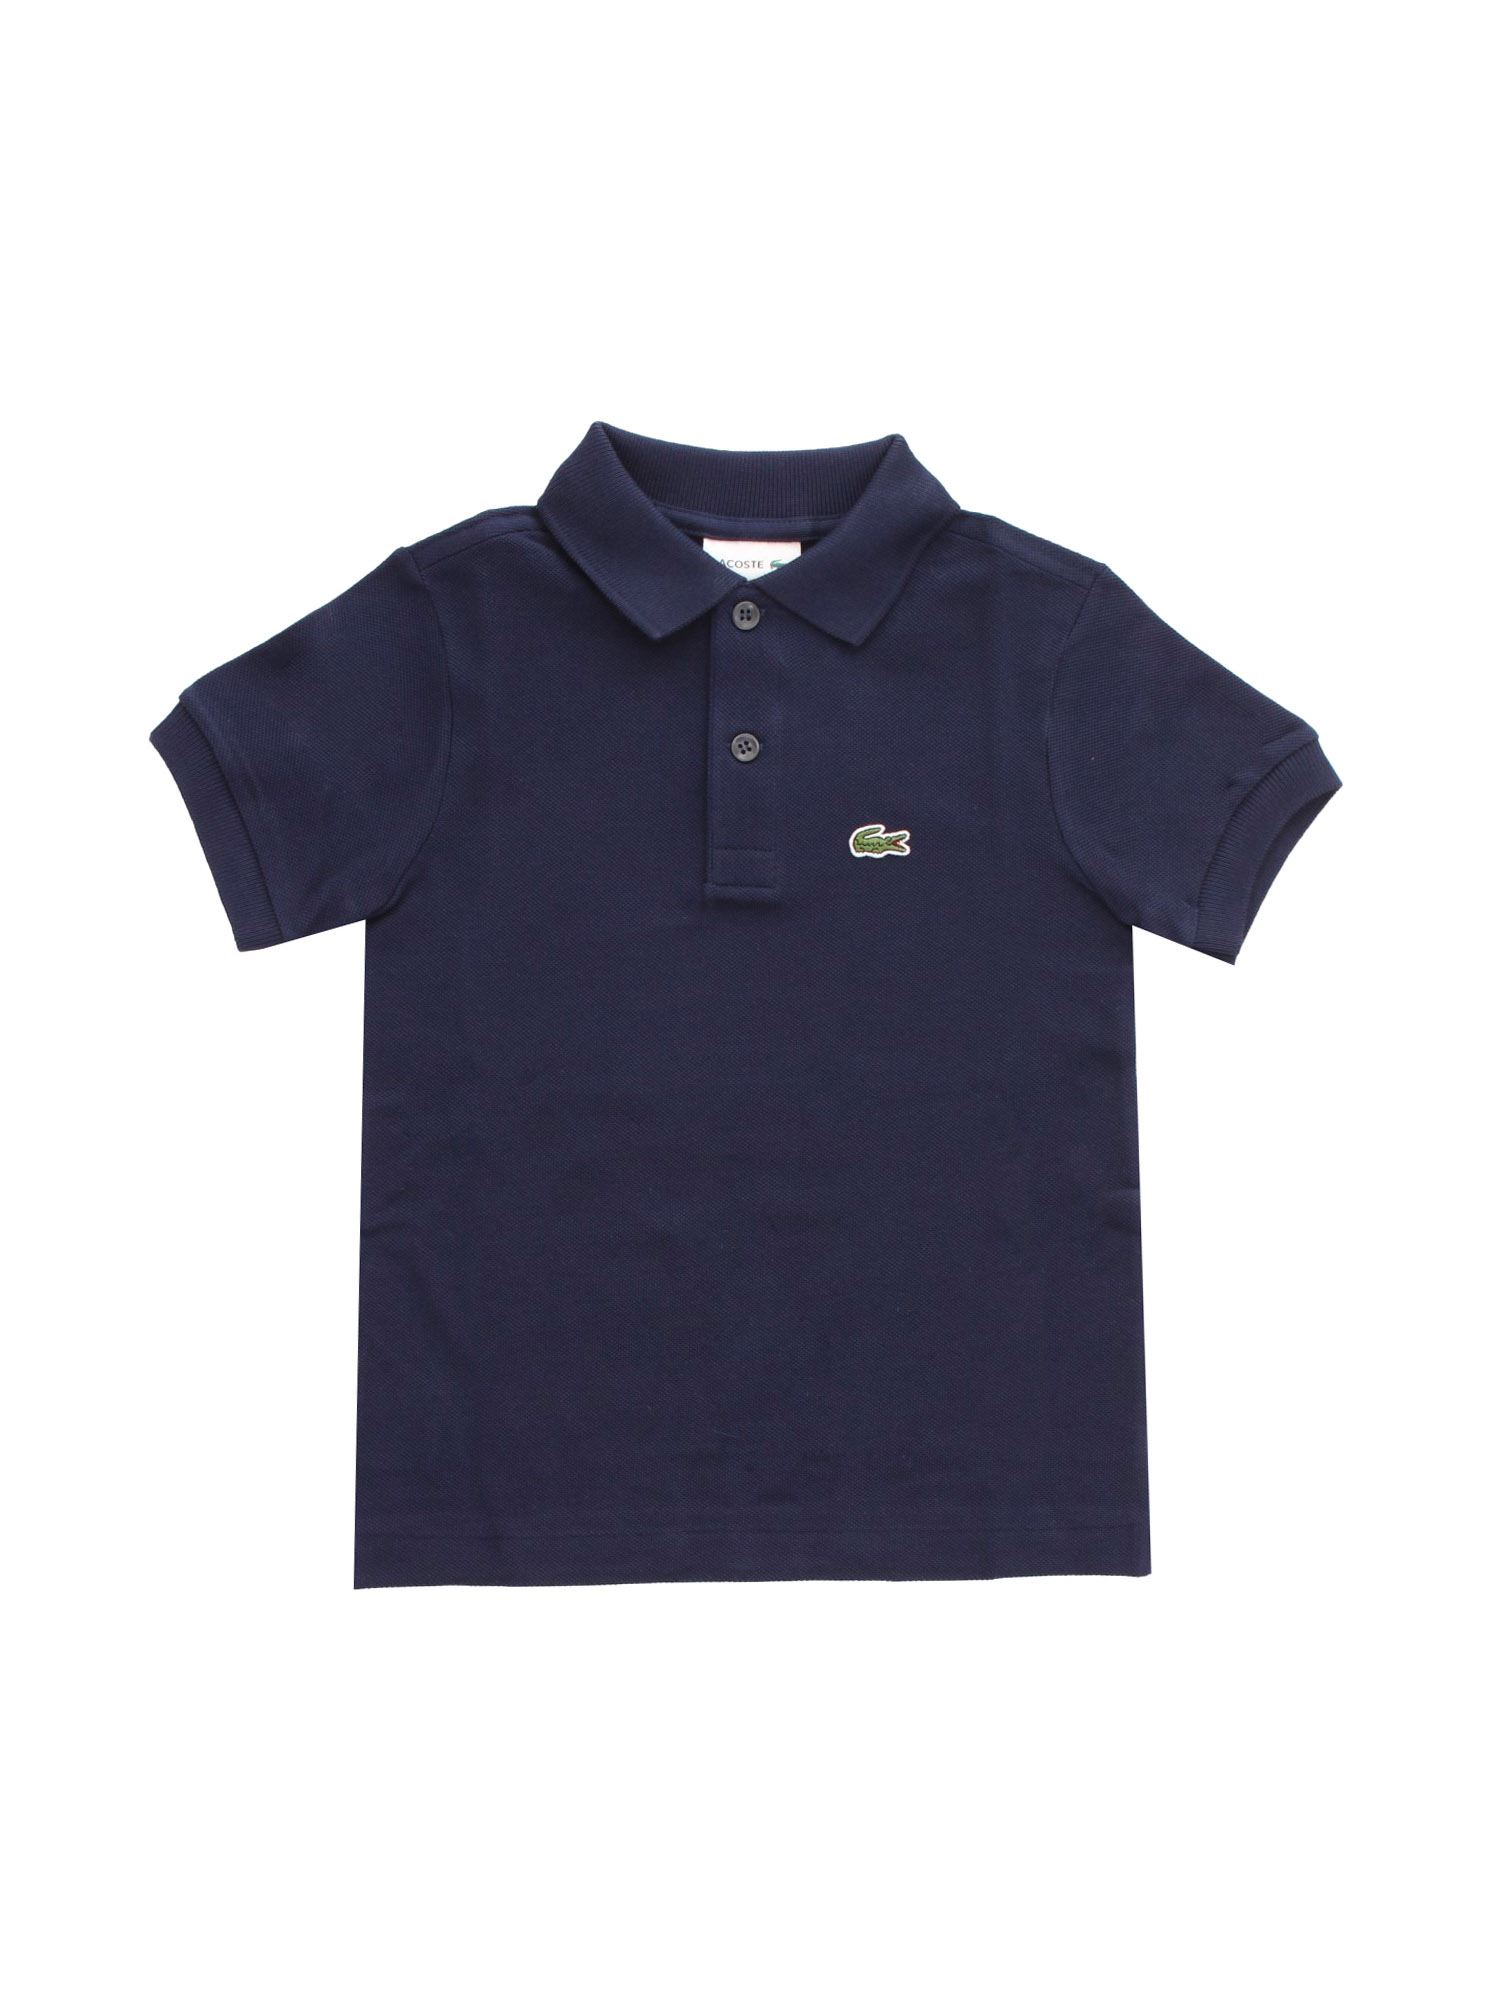 Lacoste LOGO PATCH POLO SHIRT IN BLUE